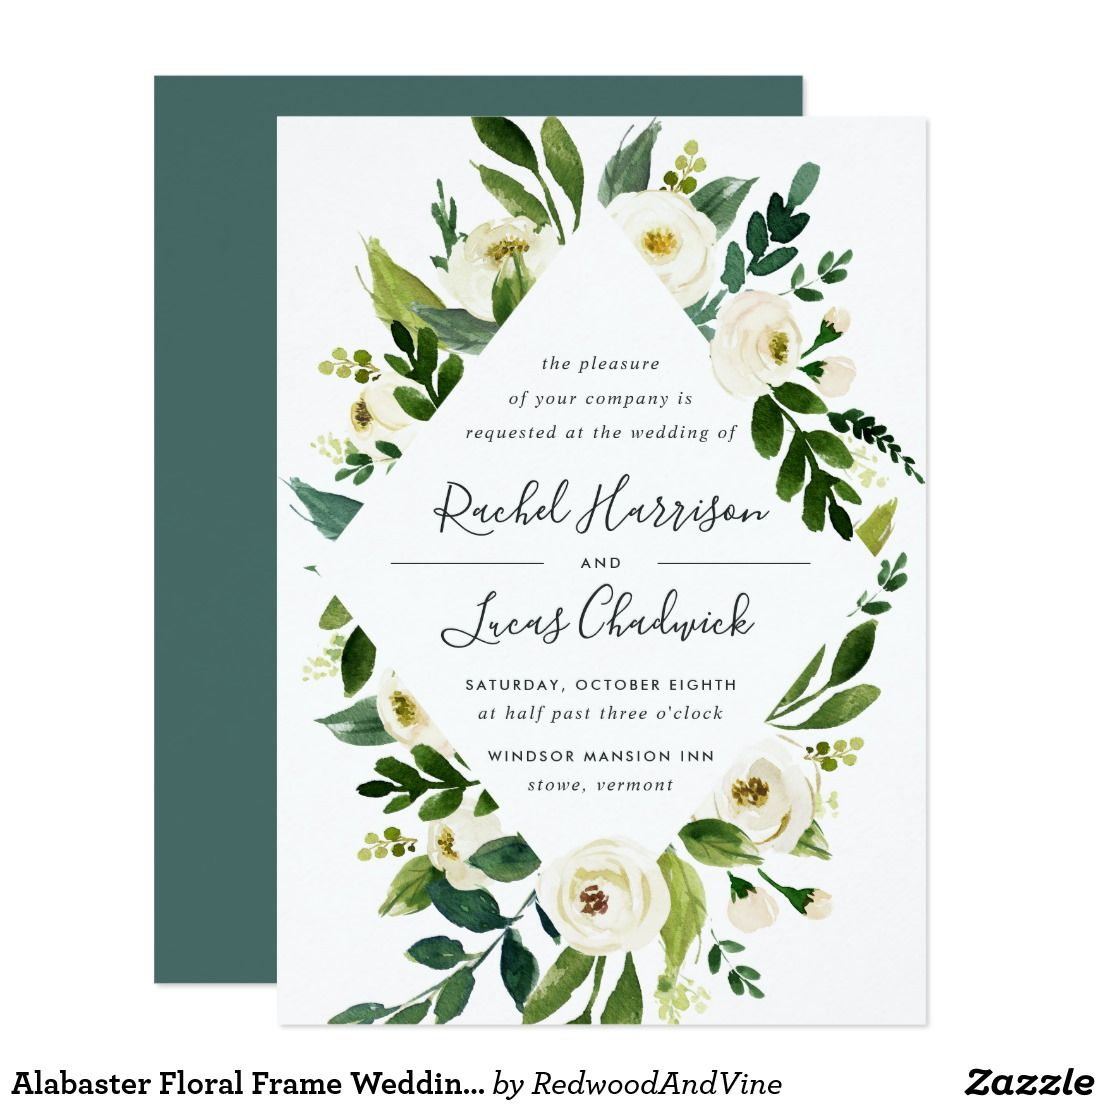 Alabaster Floral Frame Wedding Invitation Pinterest White